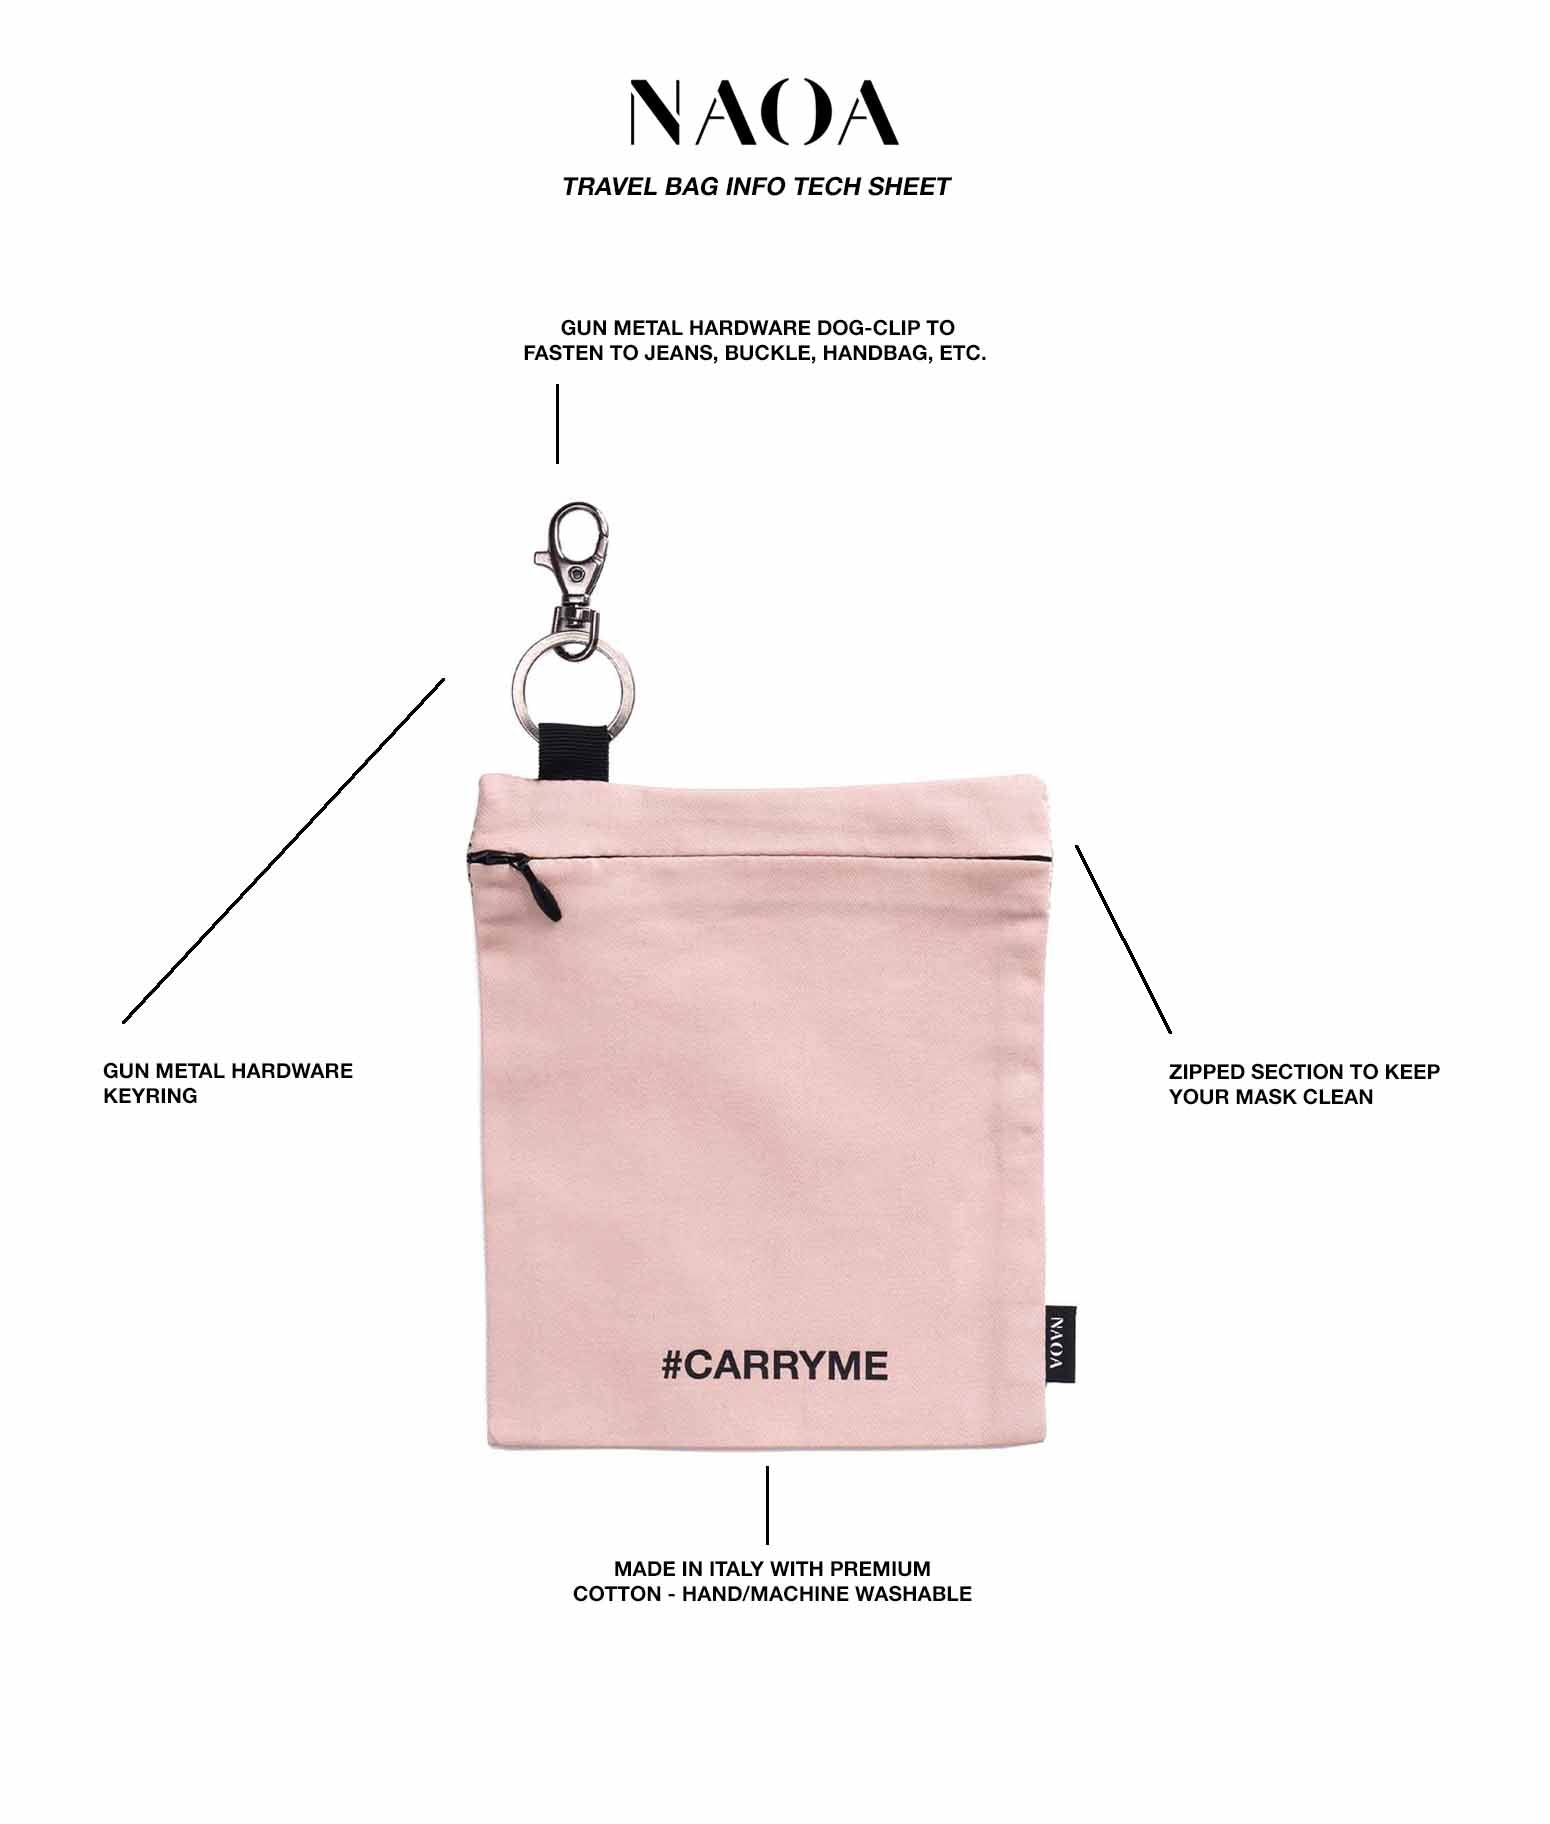 pouch description